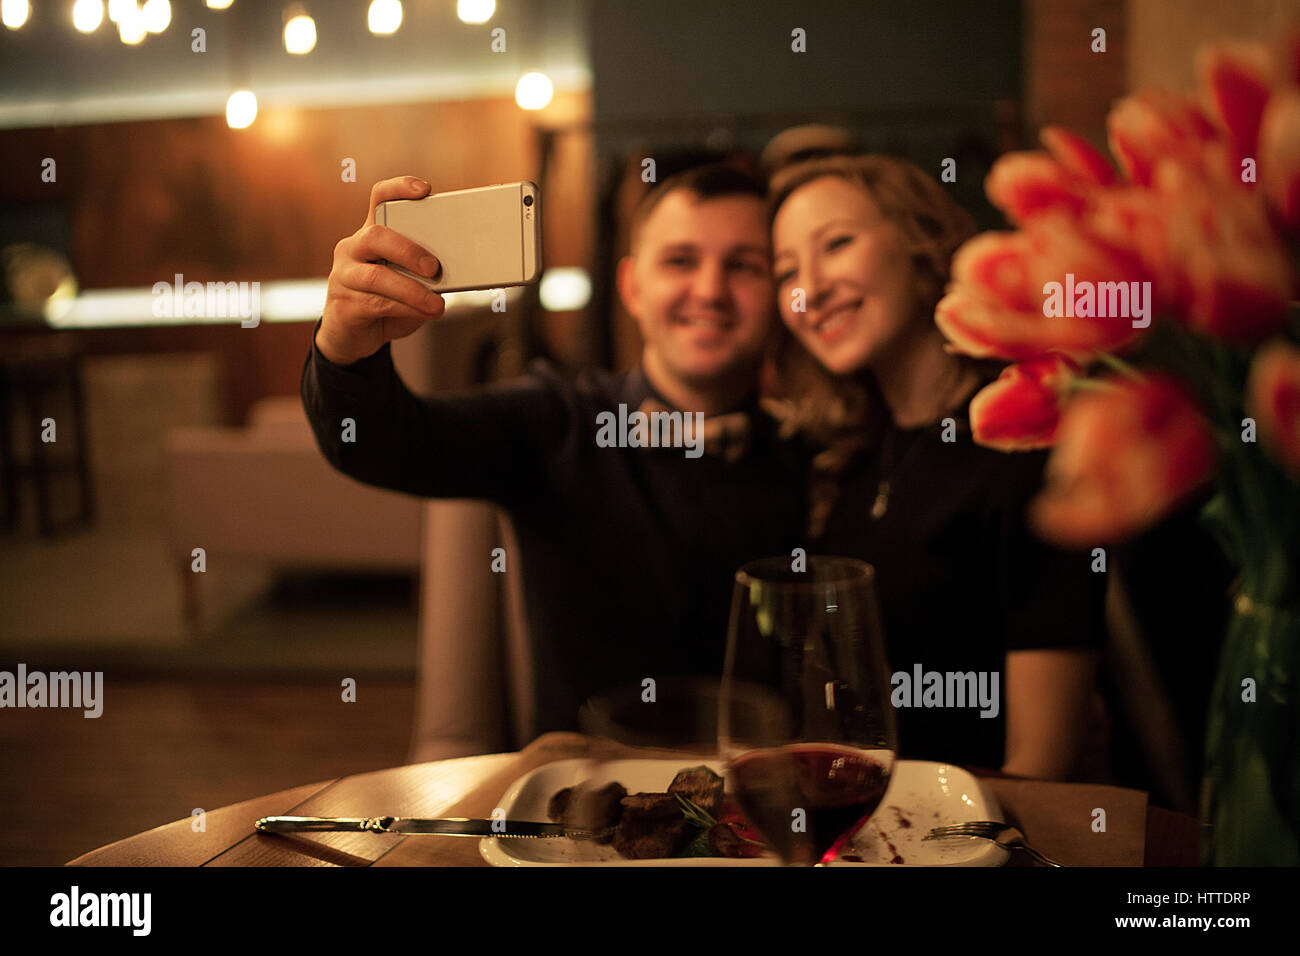 Young man and woman making selfy by smartphone in restaurant. Before them is table with food and glasses of wine. - Stock Image